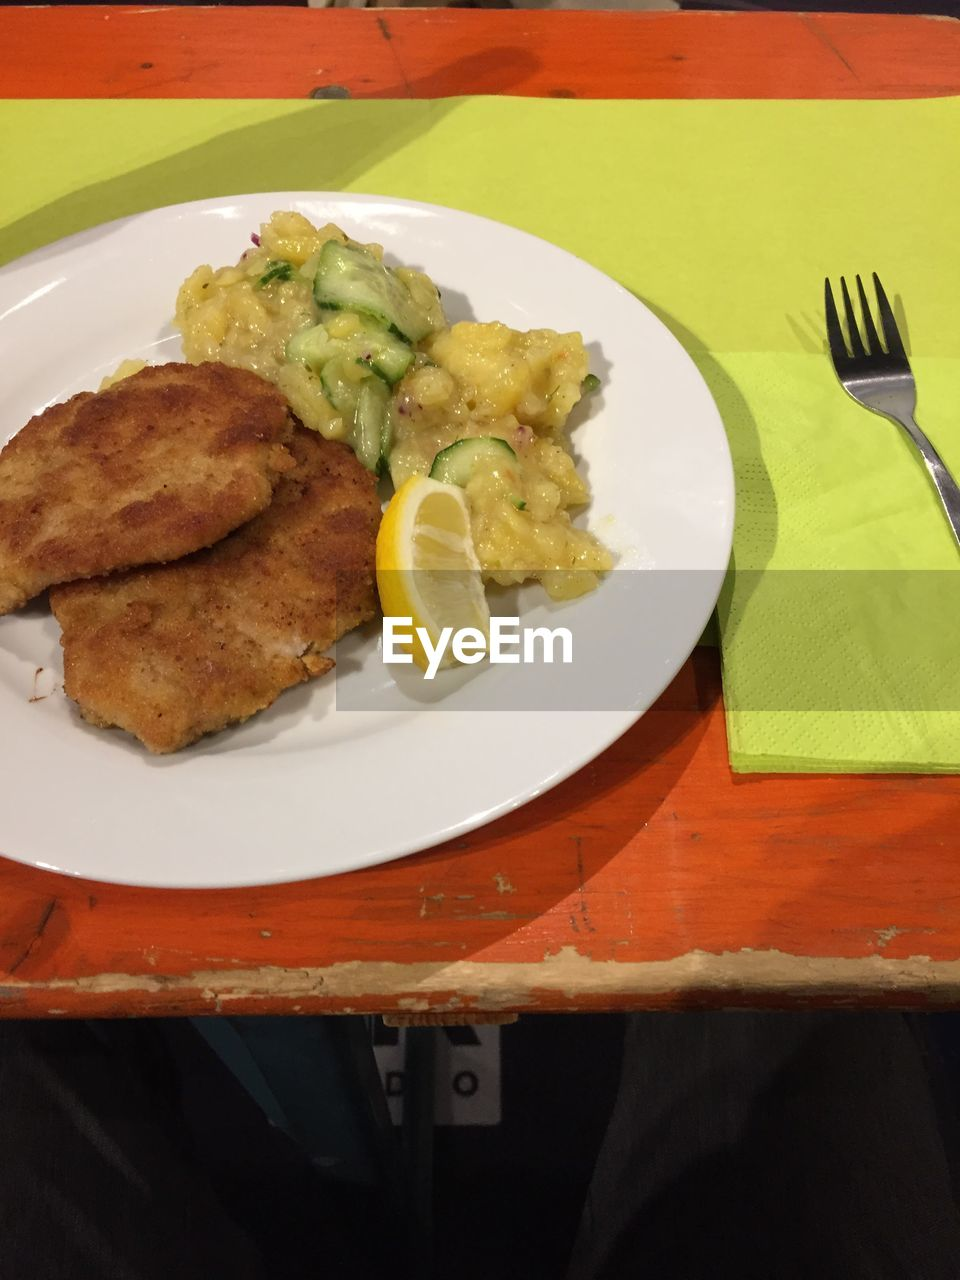 plate, food, food and drink, ready-to-eat, serving size, freshness, still life, table, healthy eating, indoors, no people, indulgence, meal, slice, fork, close-up, gourmet, stuffed, appetizer, cooked, mexican food, day